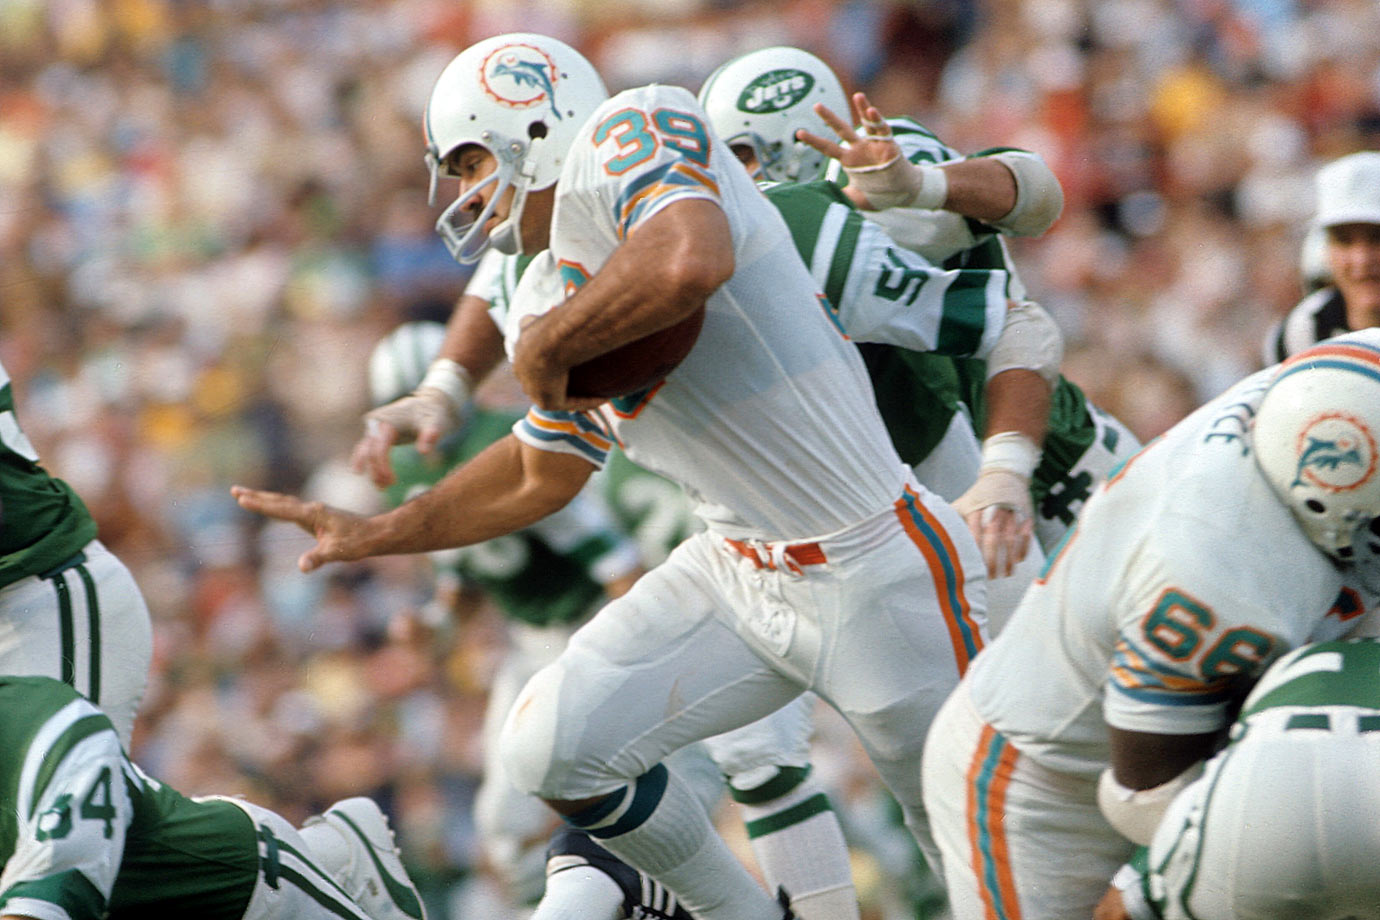 Aside from coach Don Shula, Csonka probably is the face of the Dolphins' 1970s teams for a lot of fans. The 1987 Hall inductee had his best statistical season (1,117 yards rushing) during Miami's '72 undefeated run to the Super Bowl.